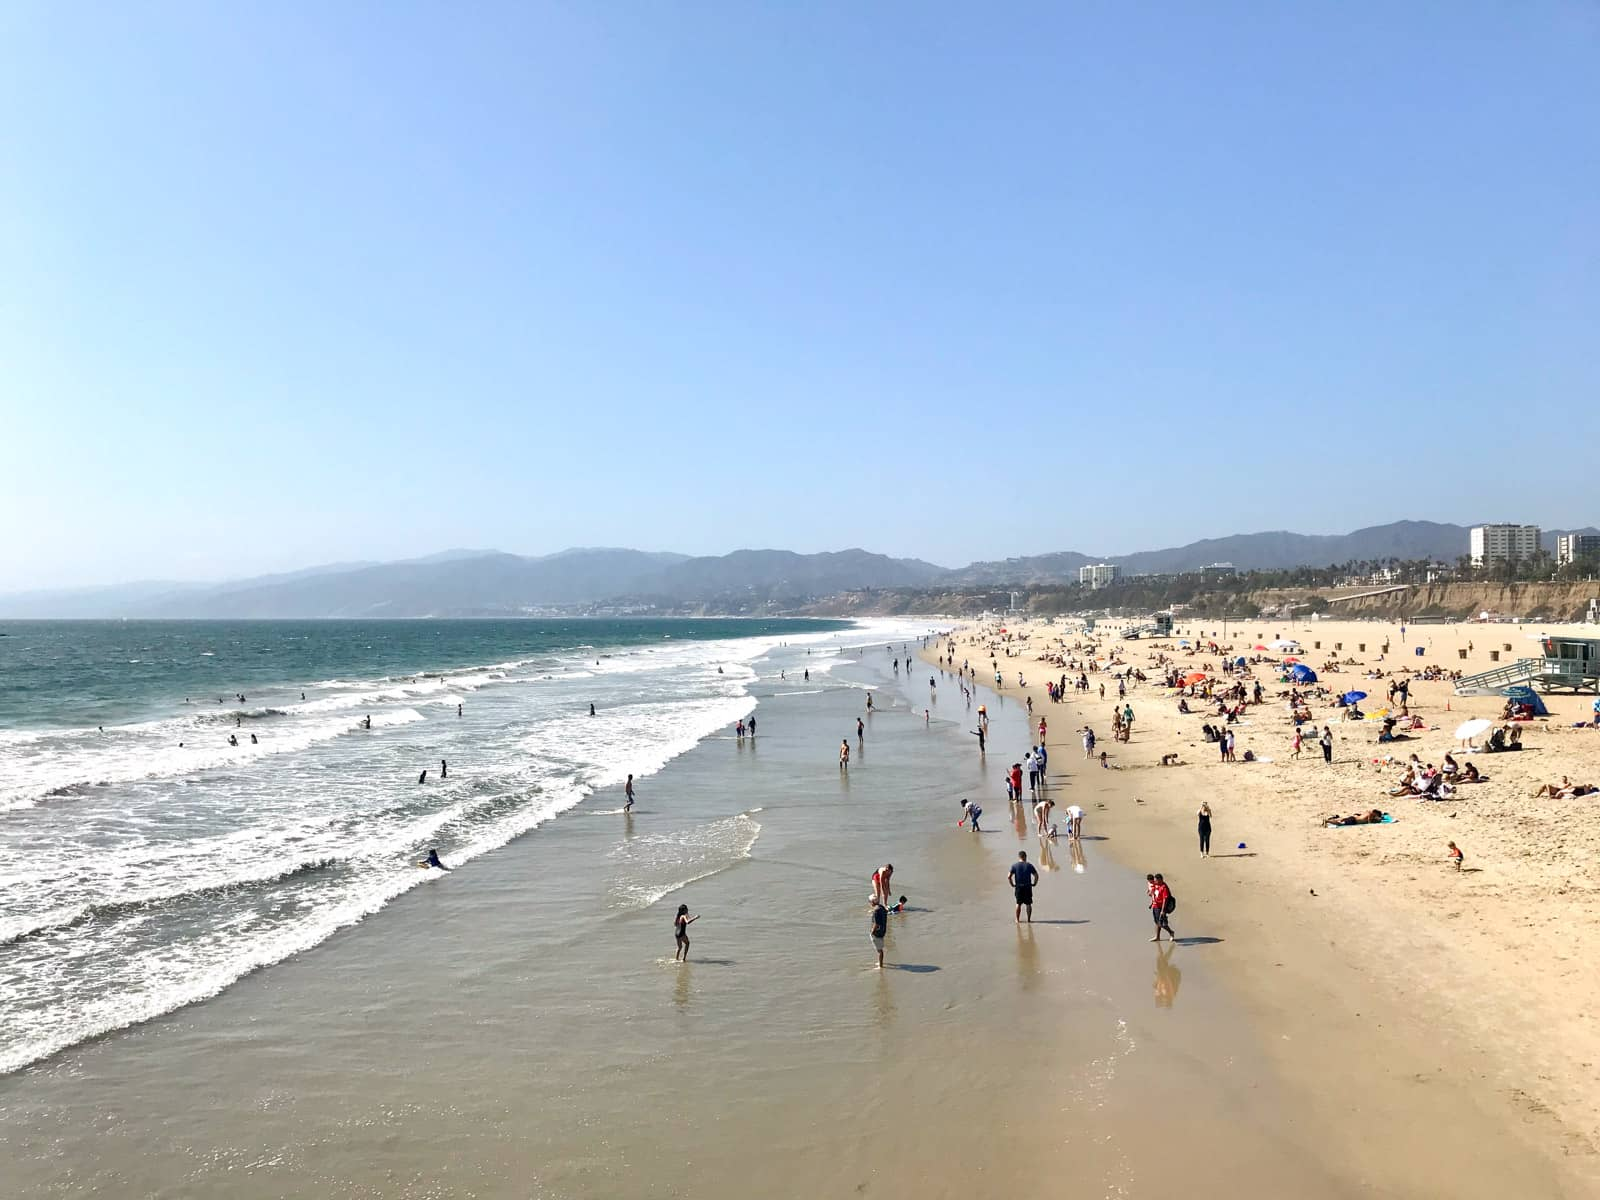 Santa Monica Beach in Los Angeles, seen from the boardwalk. The sea is on the left had side and the sandy beach is on the right. The beach has many people standing in the shallow water and many with umbrellas and sitting on the sand